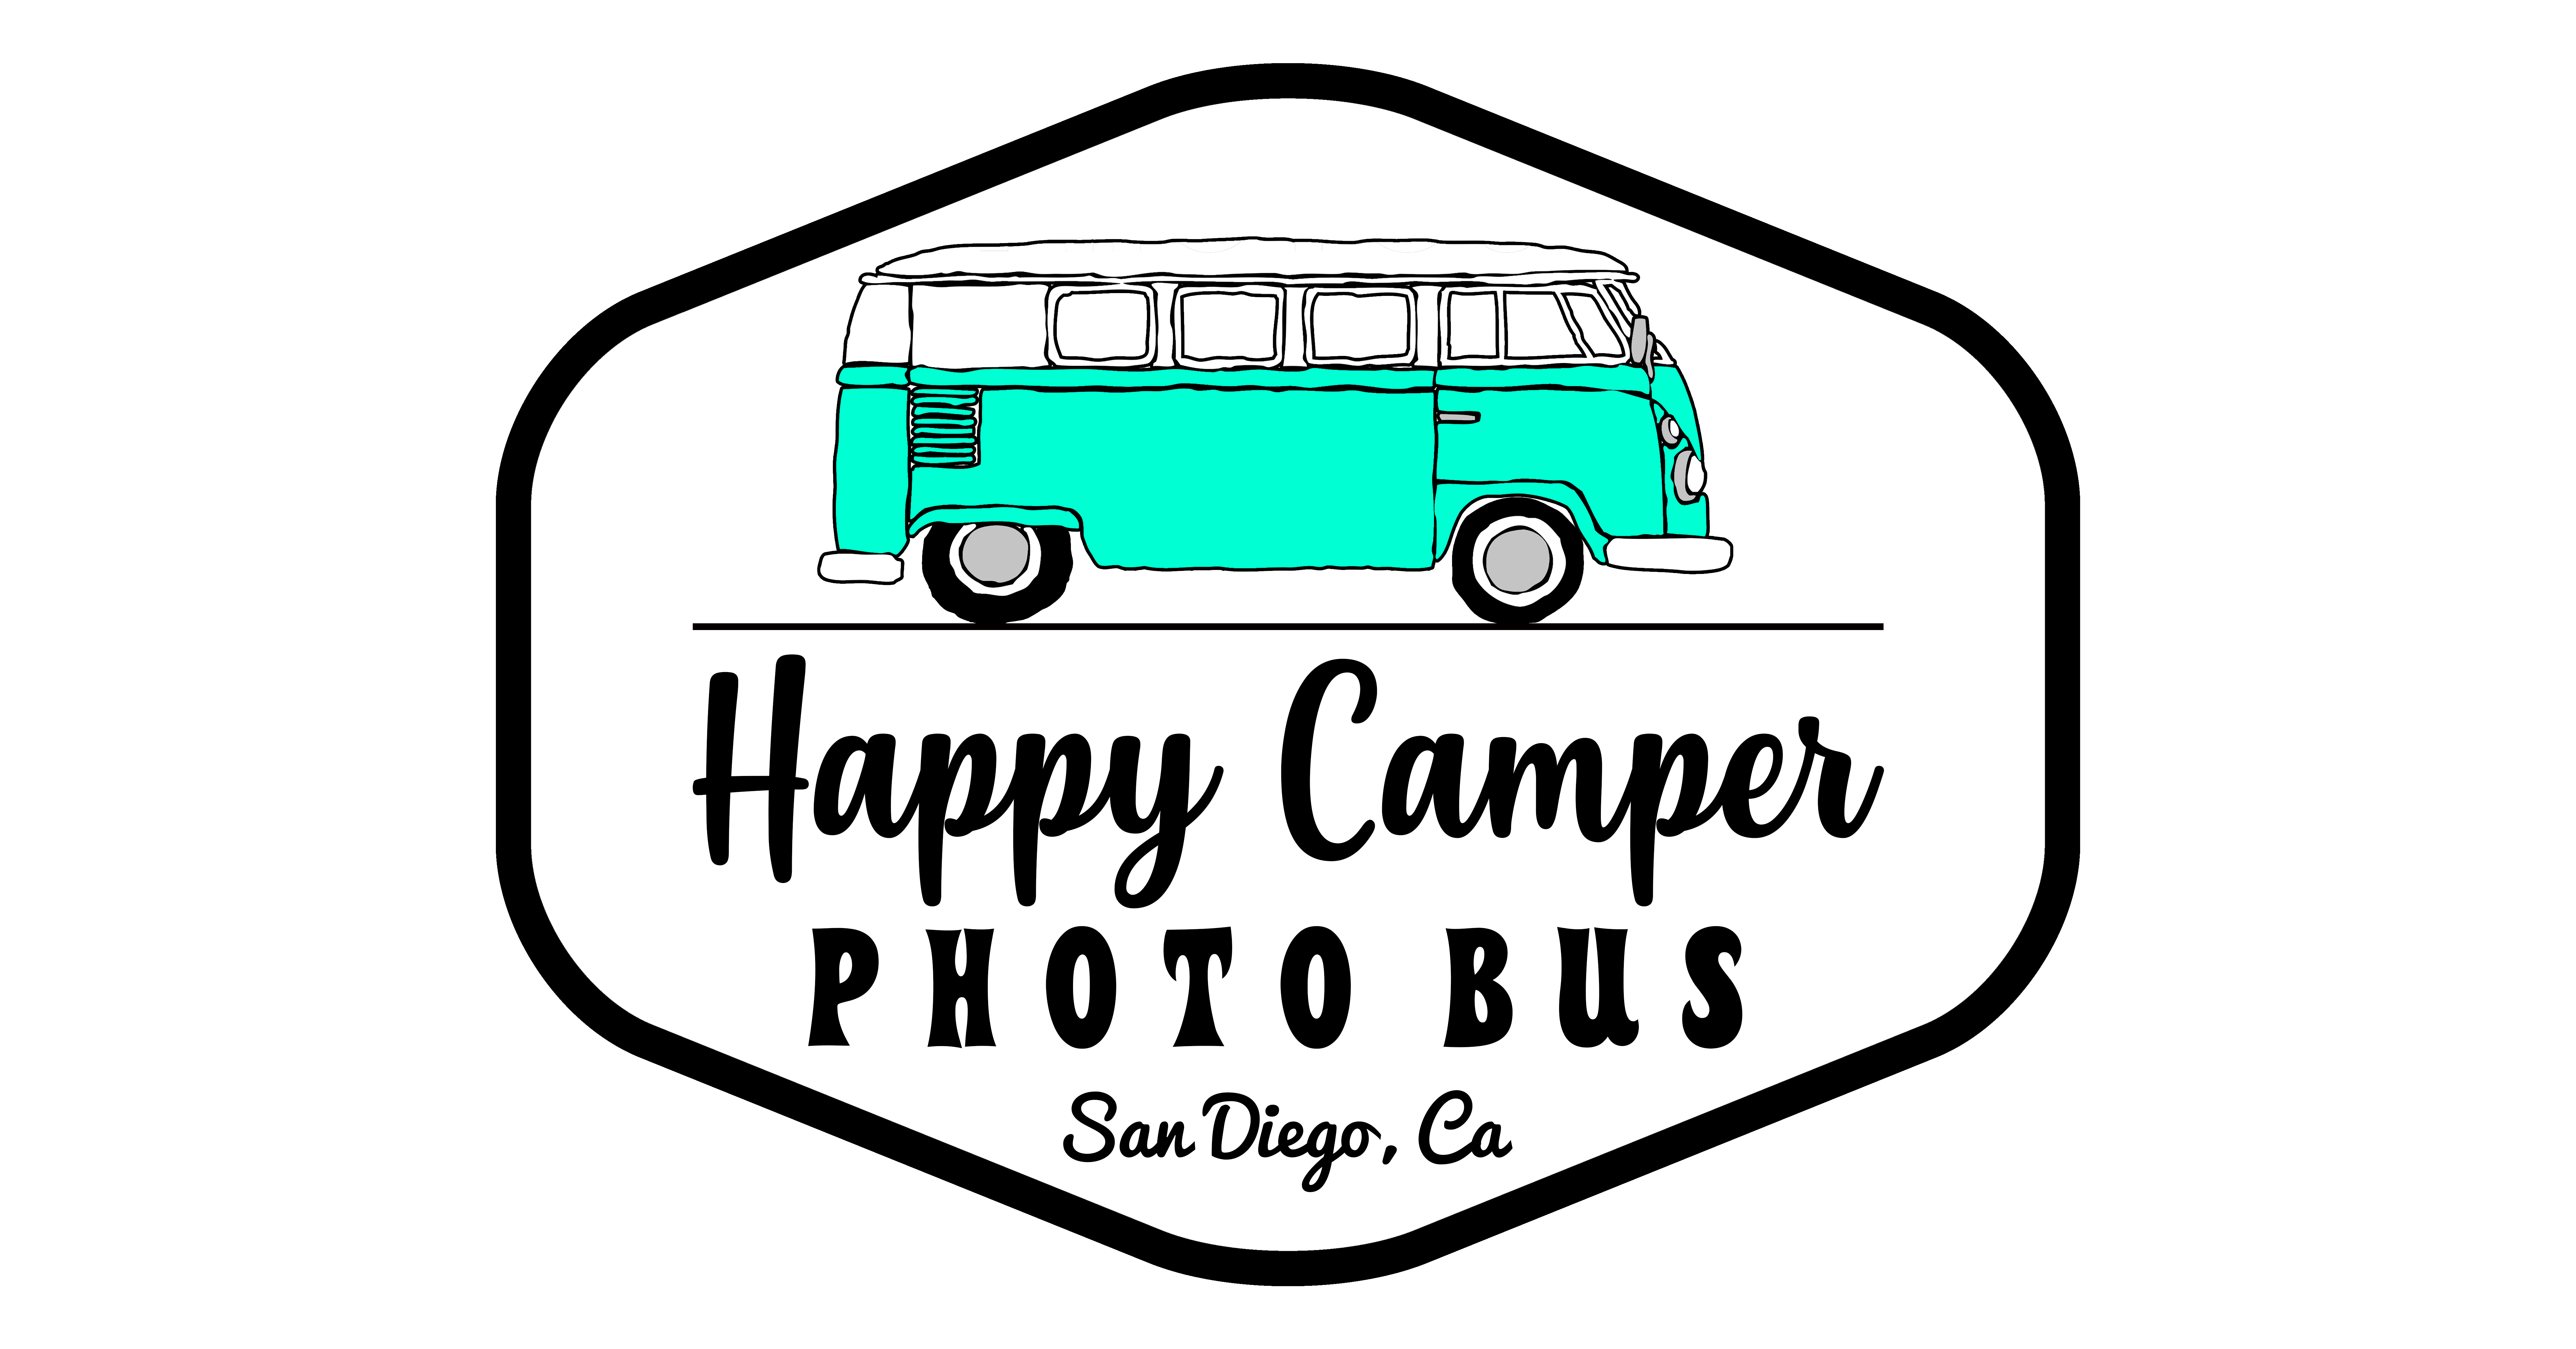 Happy Camper Photo Bus